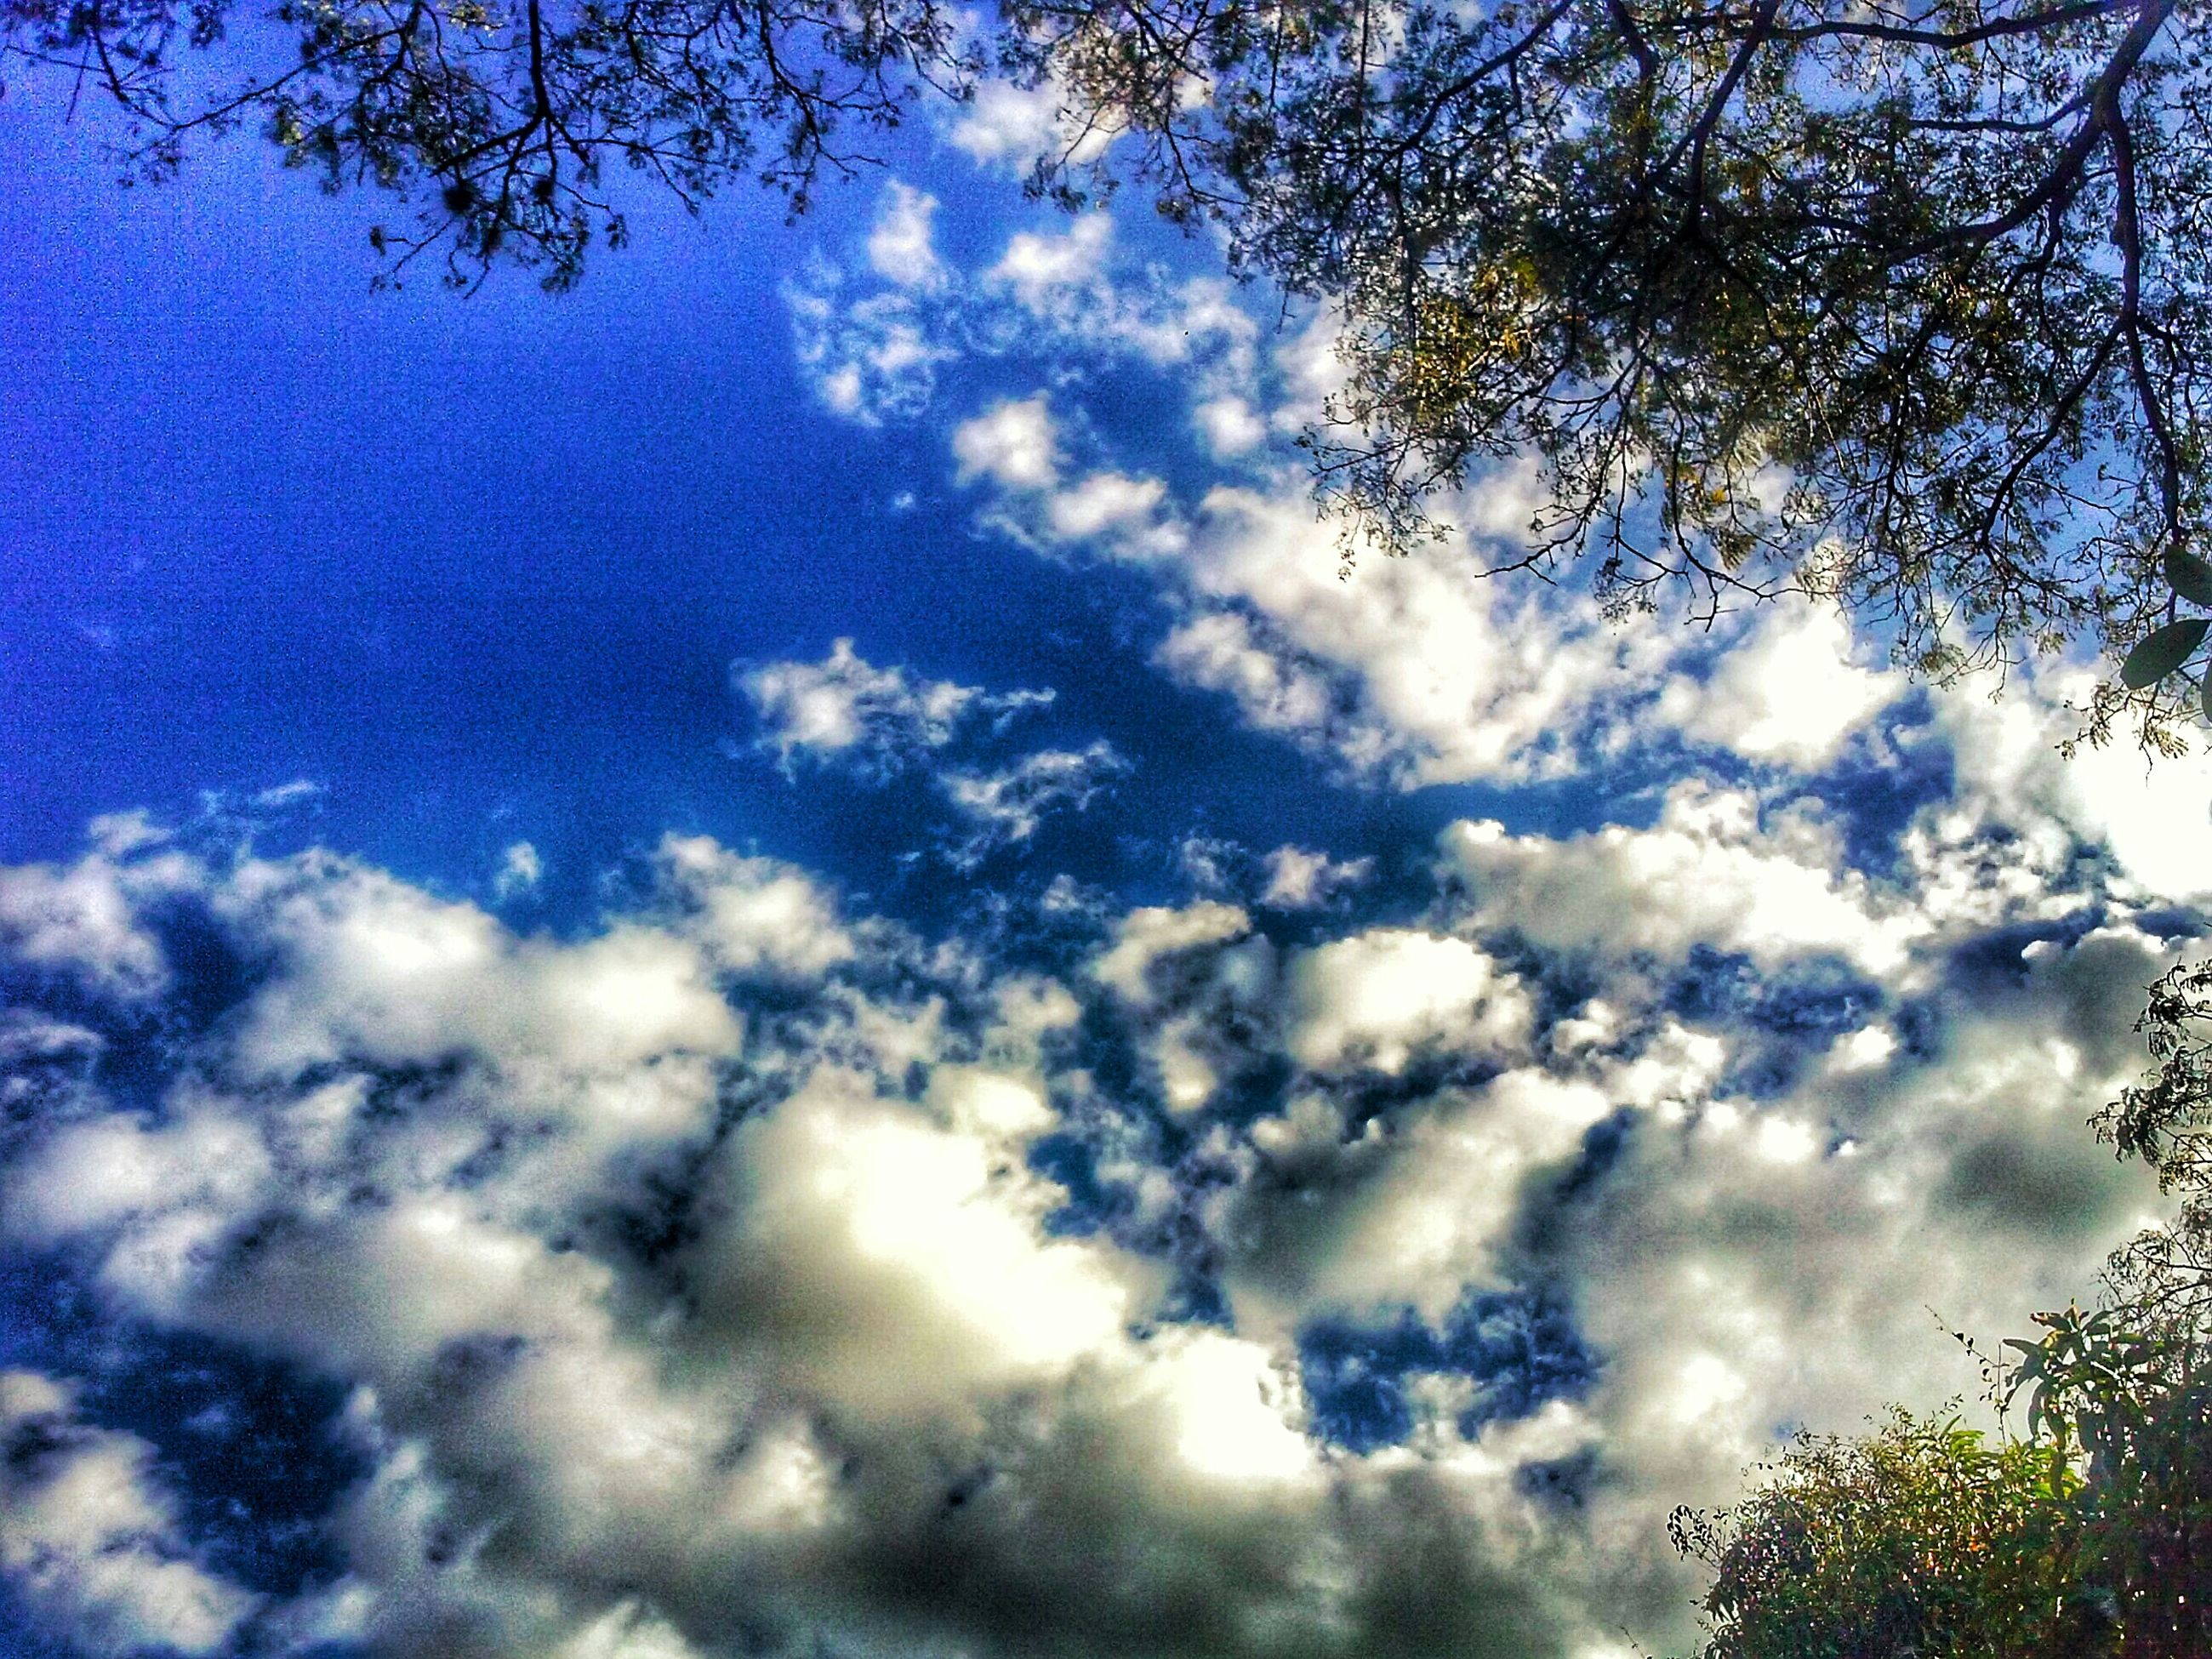 low angle view, sky, tree, cloud - sky, tranquility, beauty in nature, nature, cloudy, scenics, tranquil scene, cloud, growth, blue, branch, cloudscape, outdoors, silhouette, day, no people, idyllic